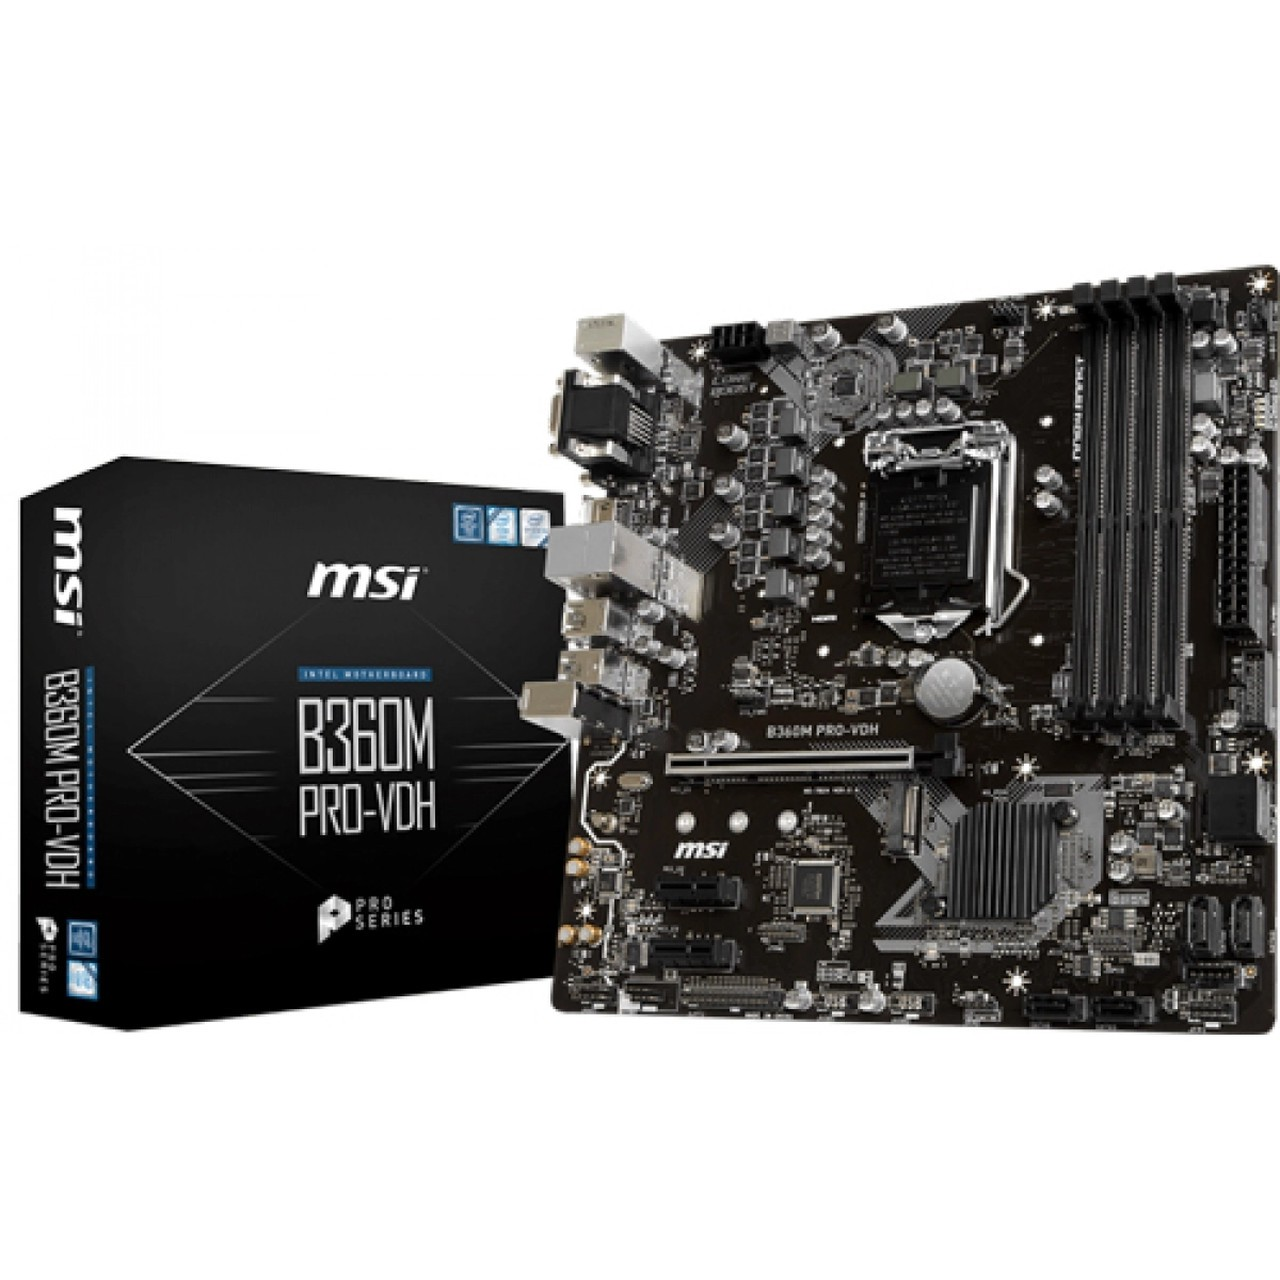 PLACA MAE MSI B360M PRO-VDH DDR4 SOCKET LGA1151 CHIPSET INTEL B360